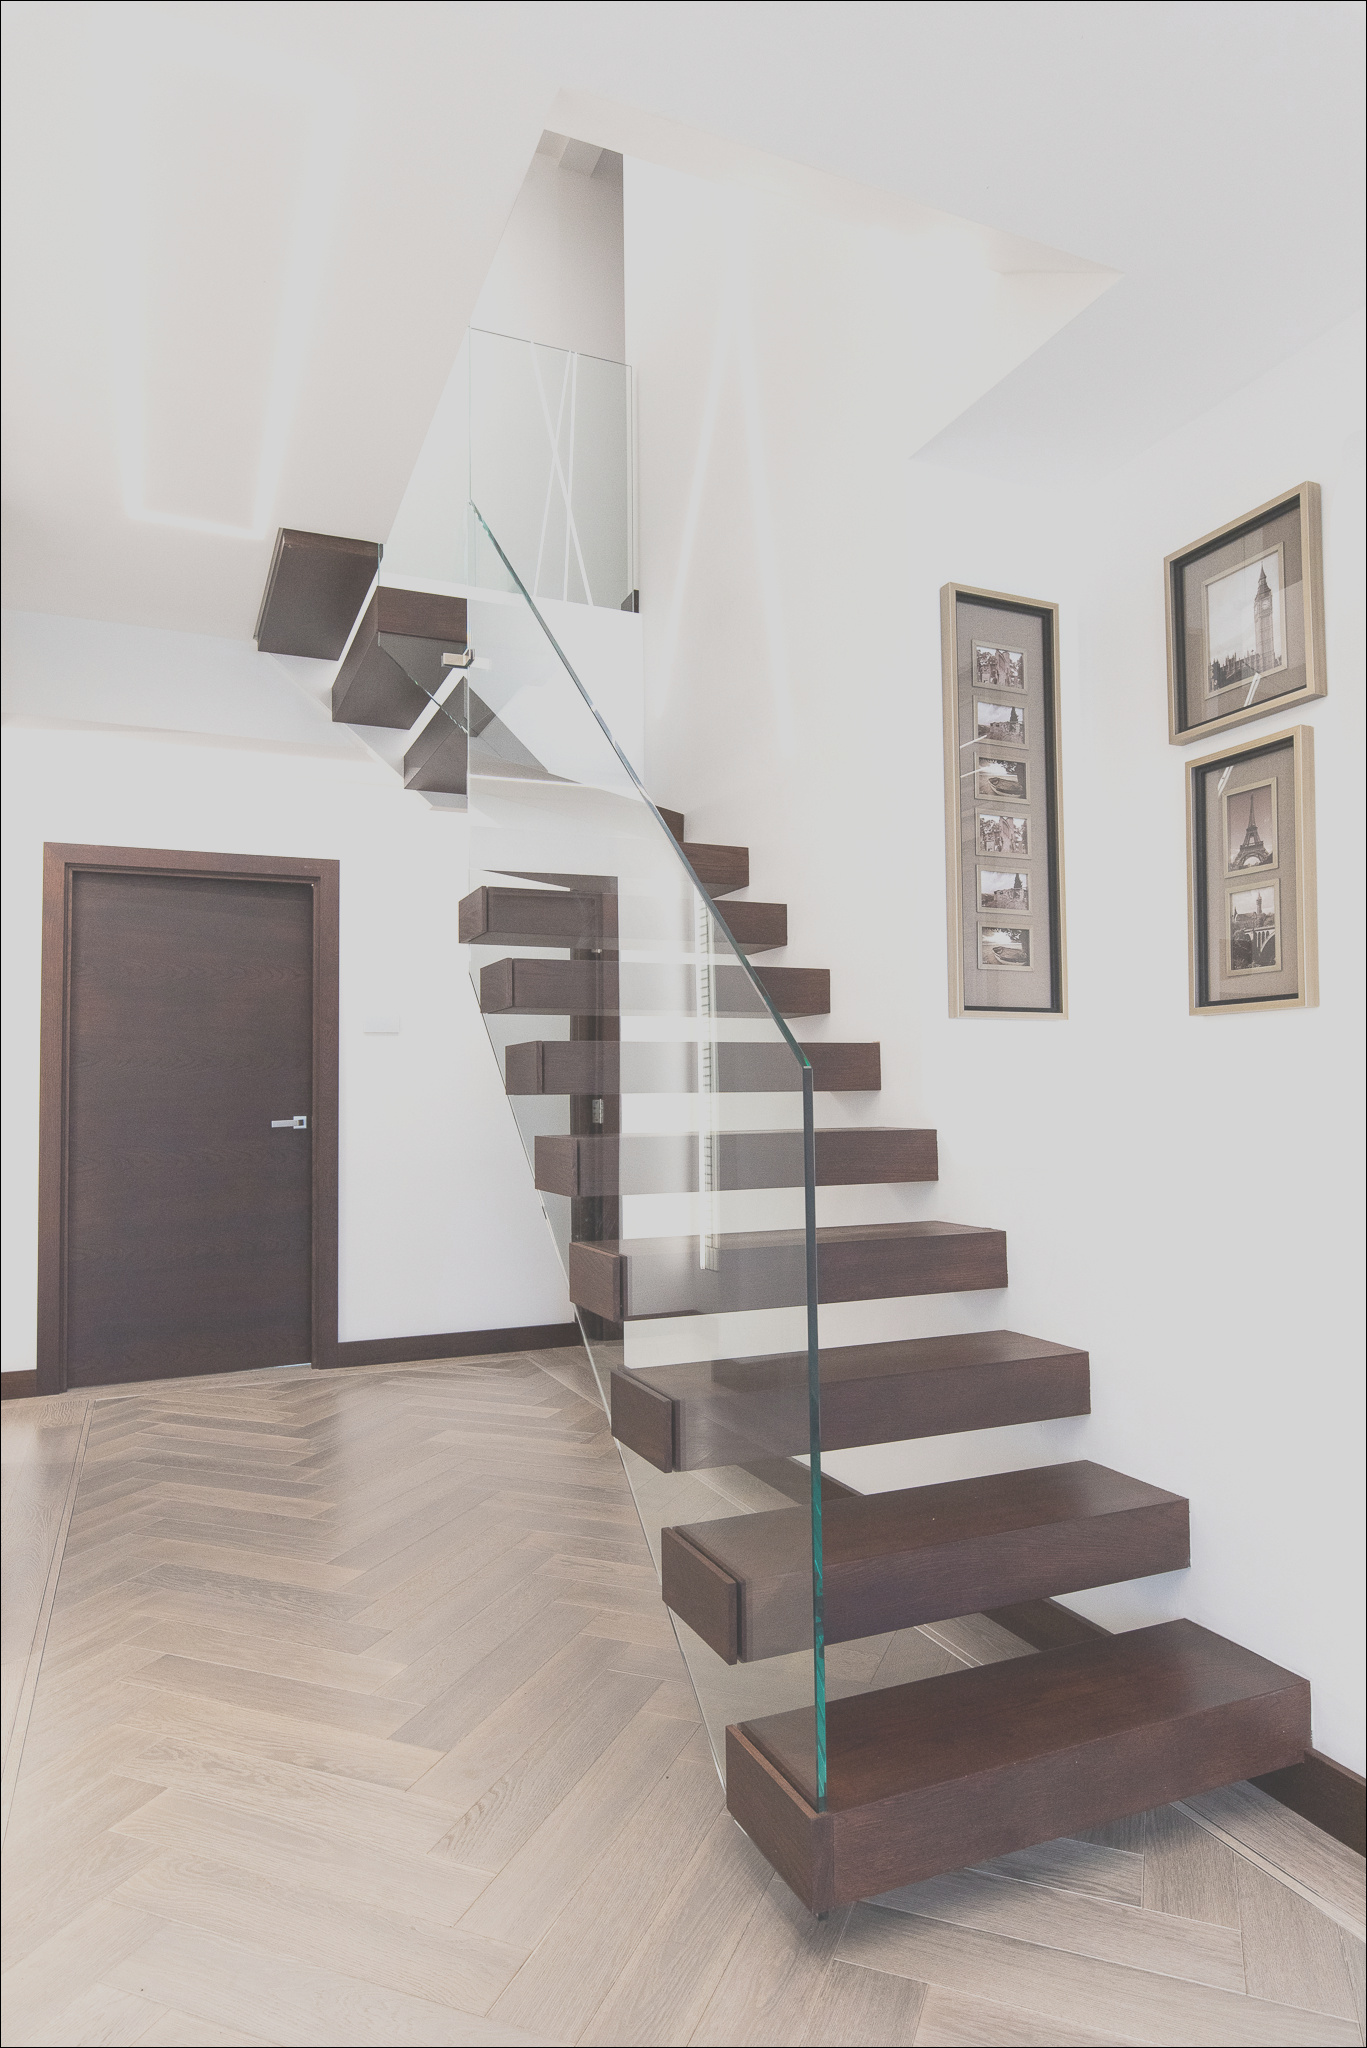 01 floating staircases